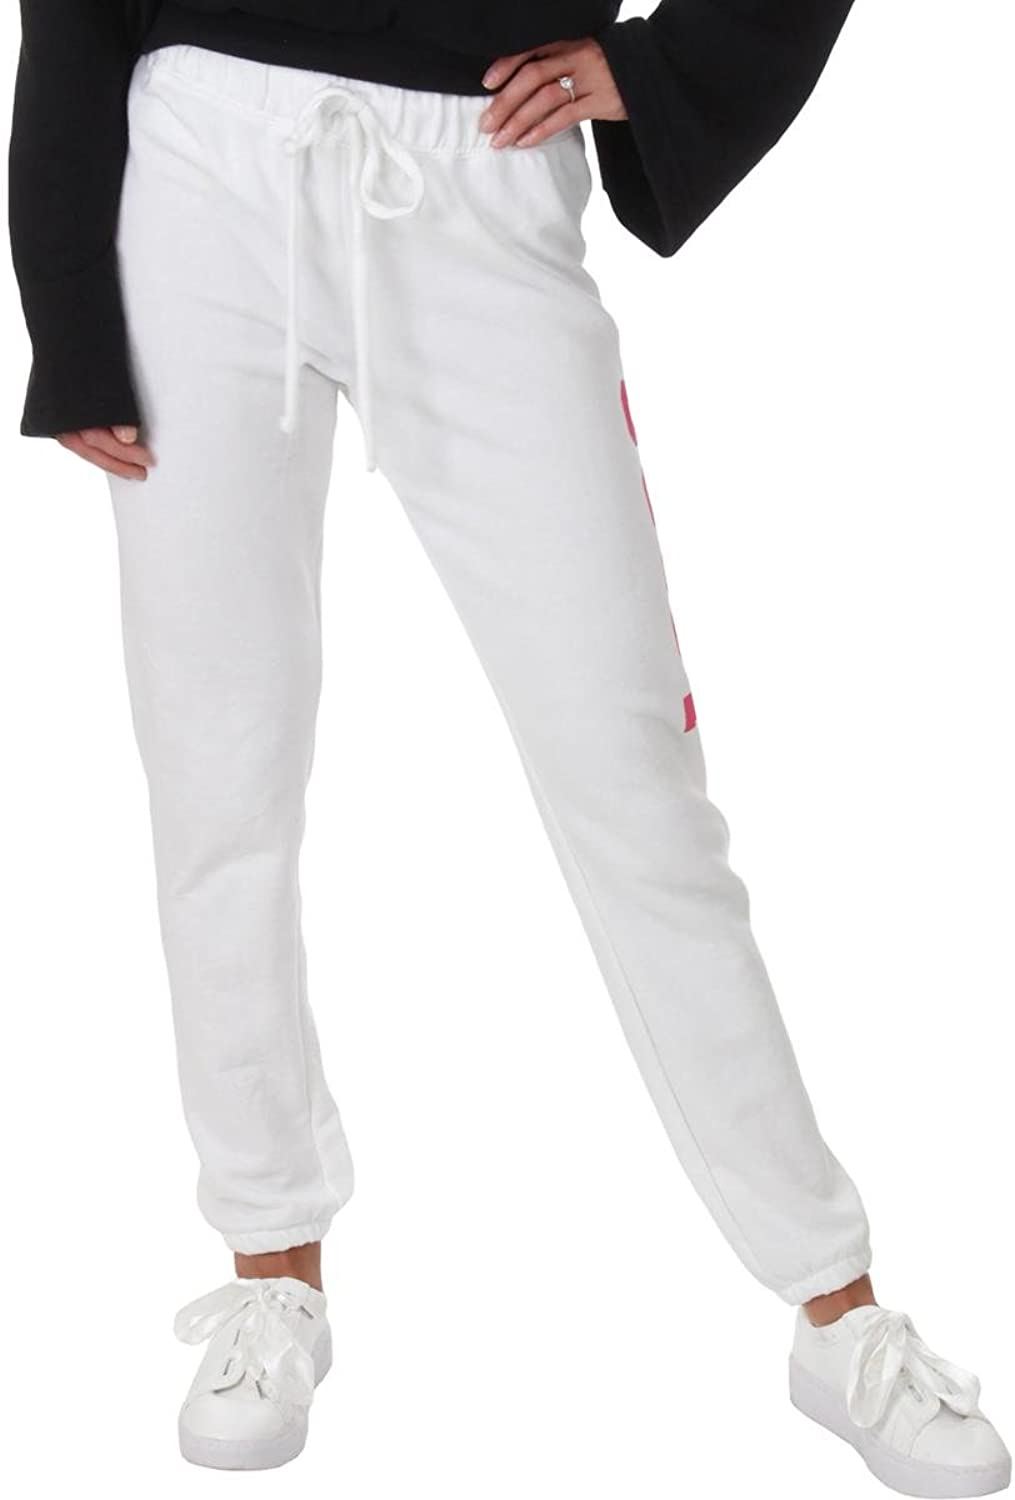 Juicy Couture Womens French Terry Jogger Sweatpants